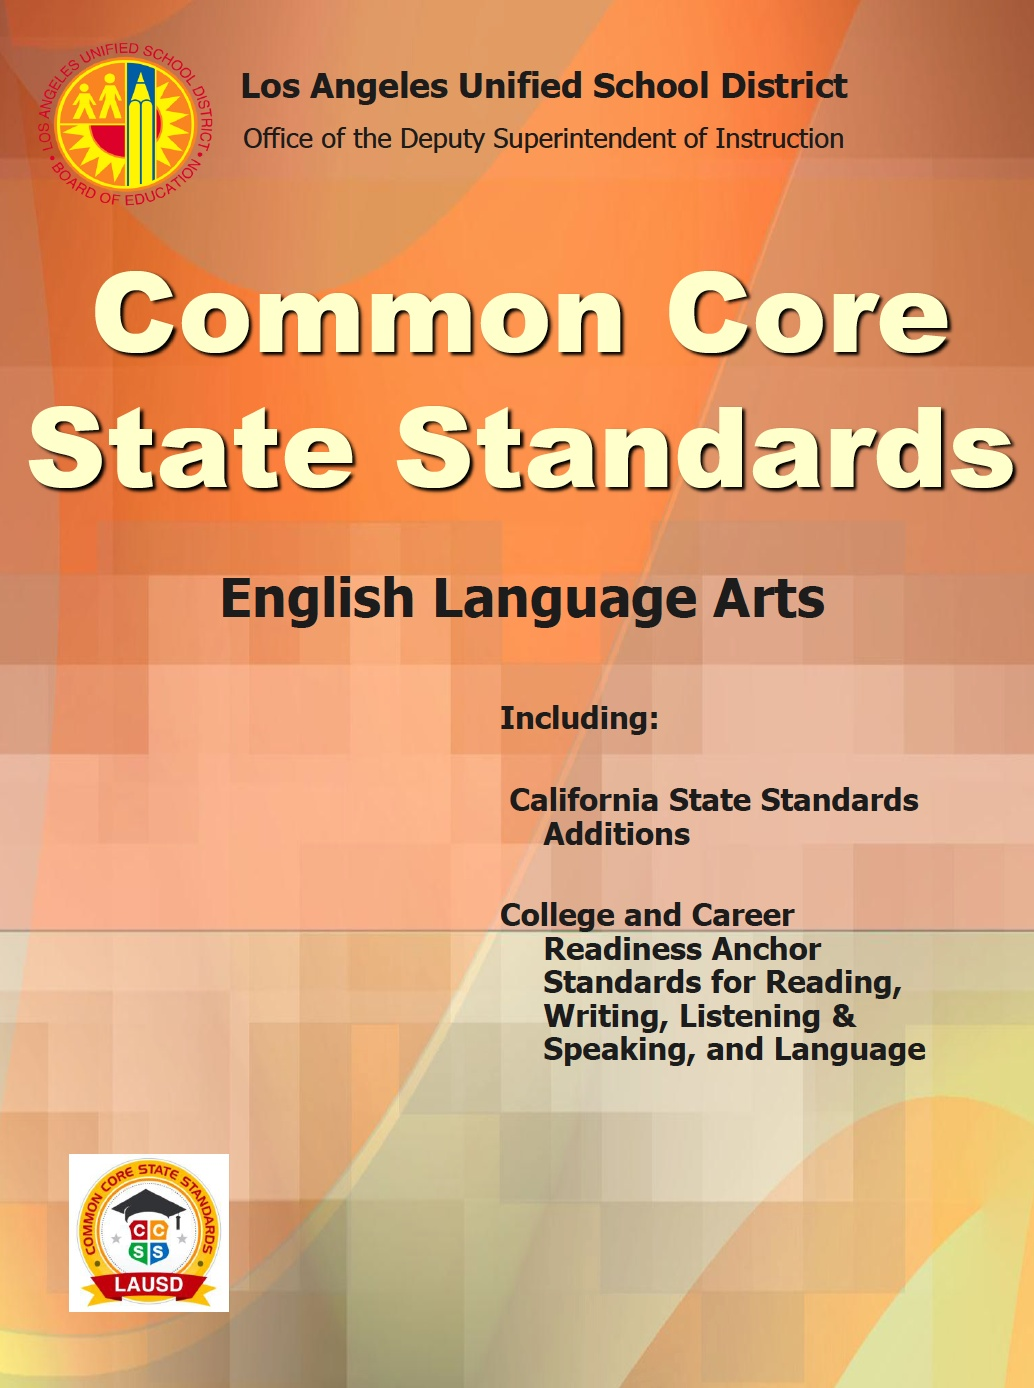 CCSS for ELA